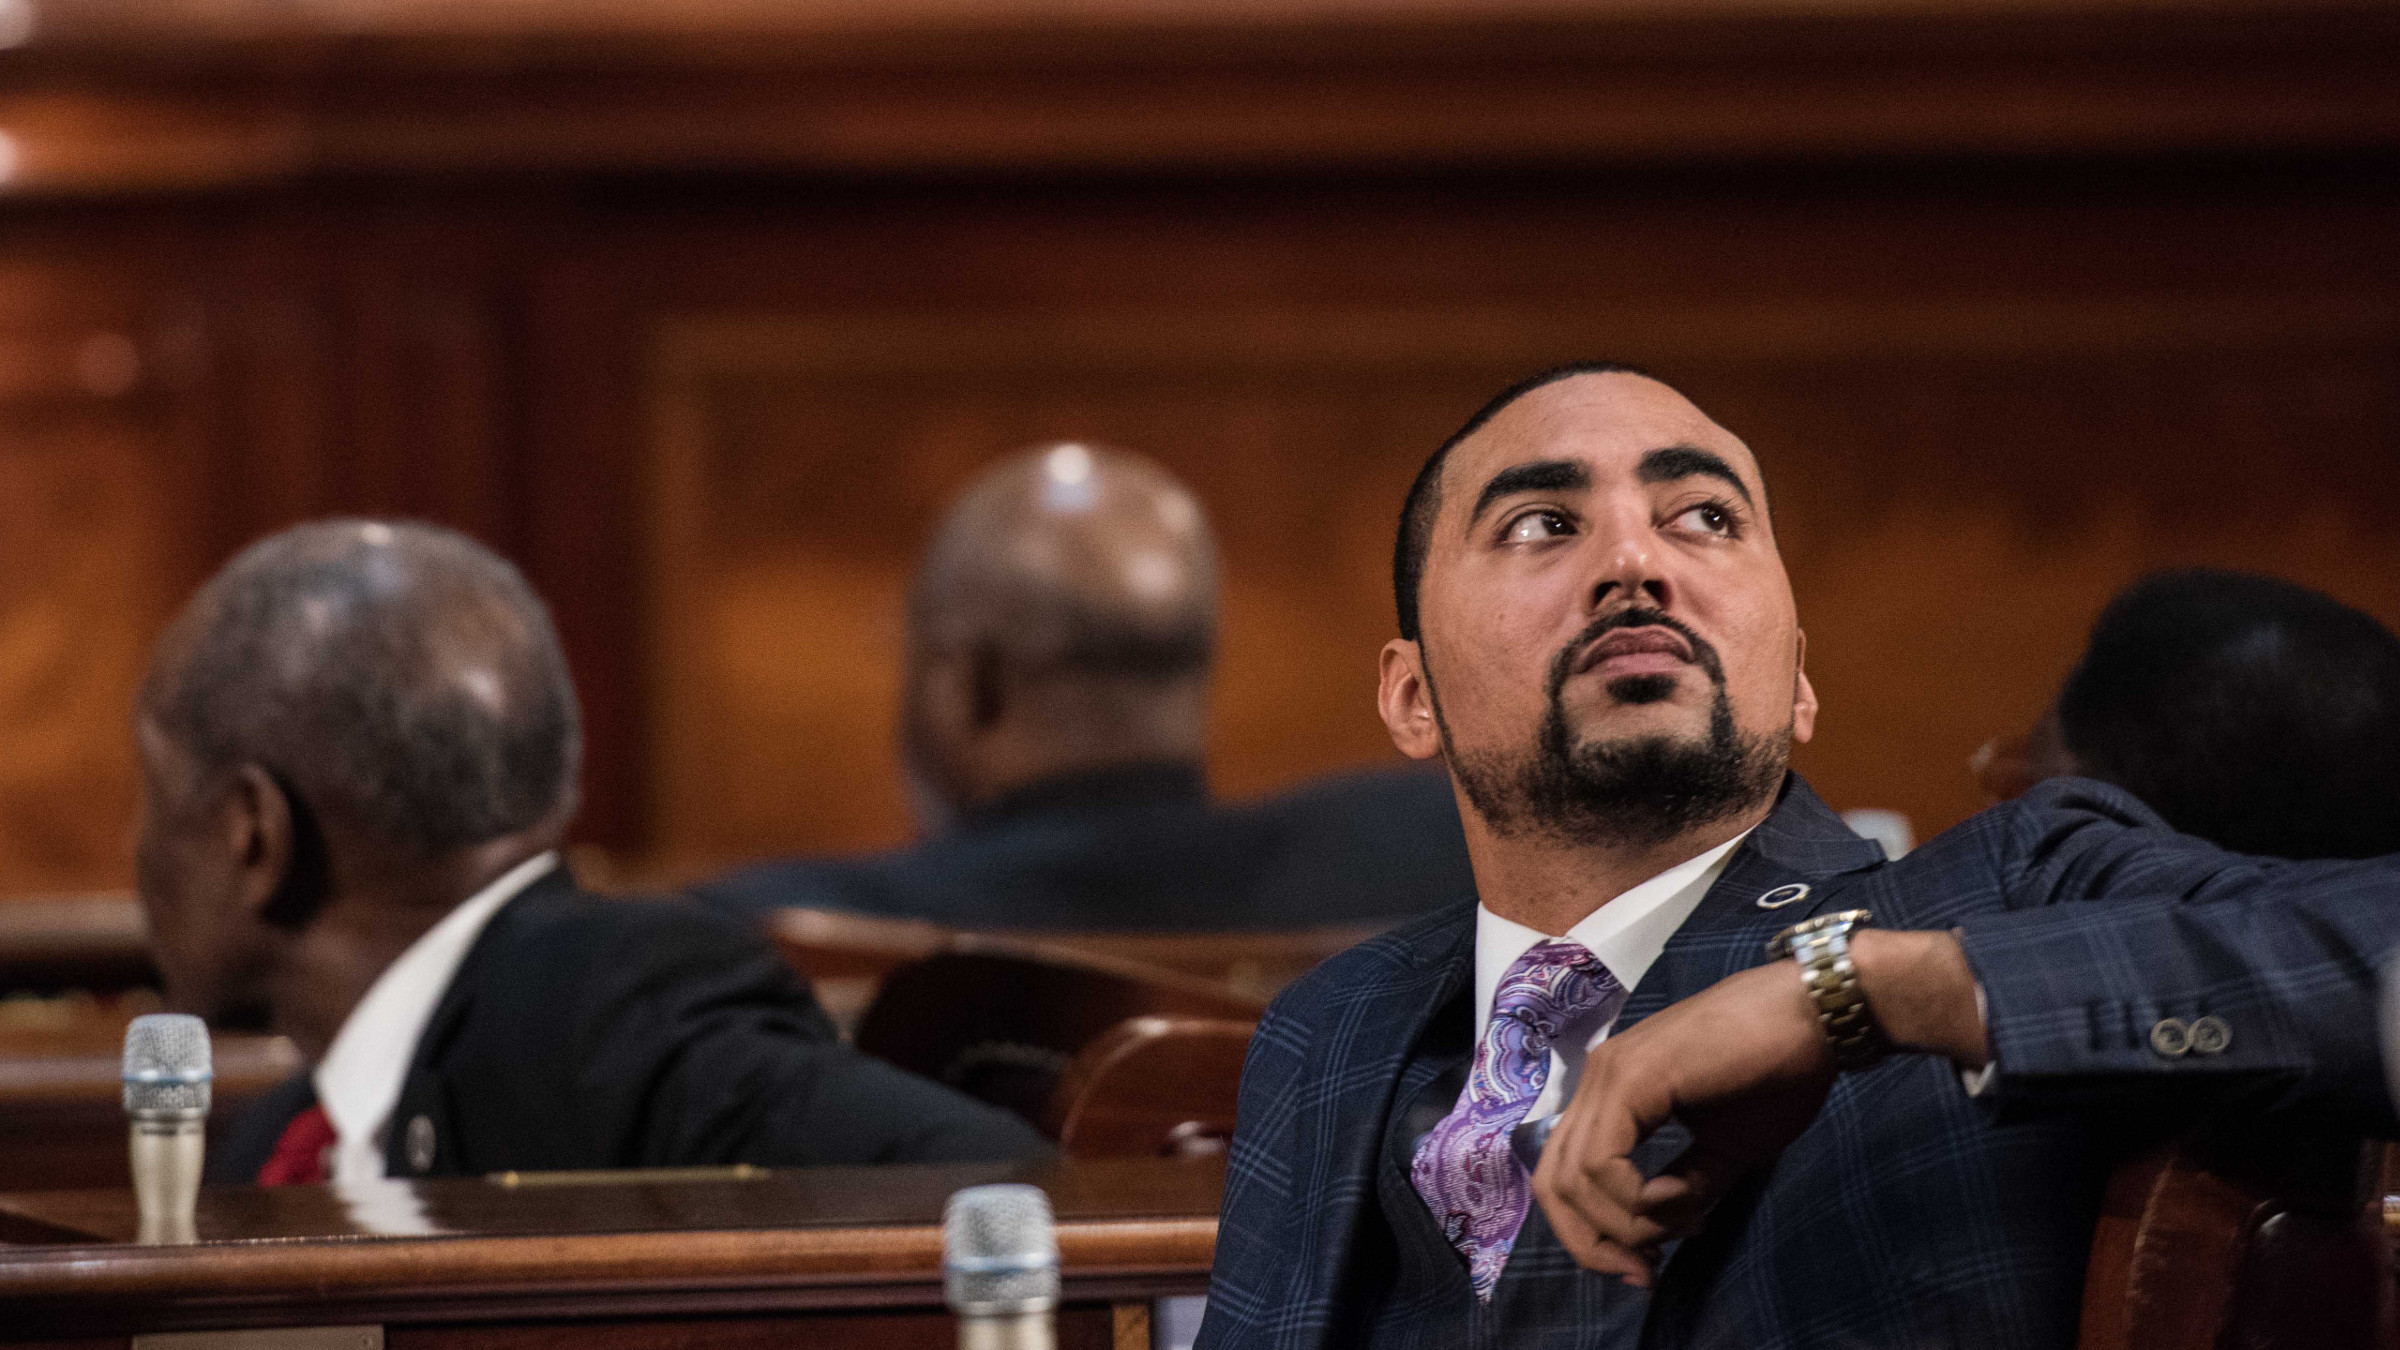 Rep. Justin Bamberg, D-Bamberg, looks up into the balcony during the State of the State in the House chambers at the South Carolina Statehouse on Wednesday, Jan. 20, 2016, in Columbia, S.C.